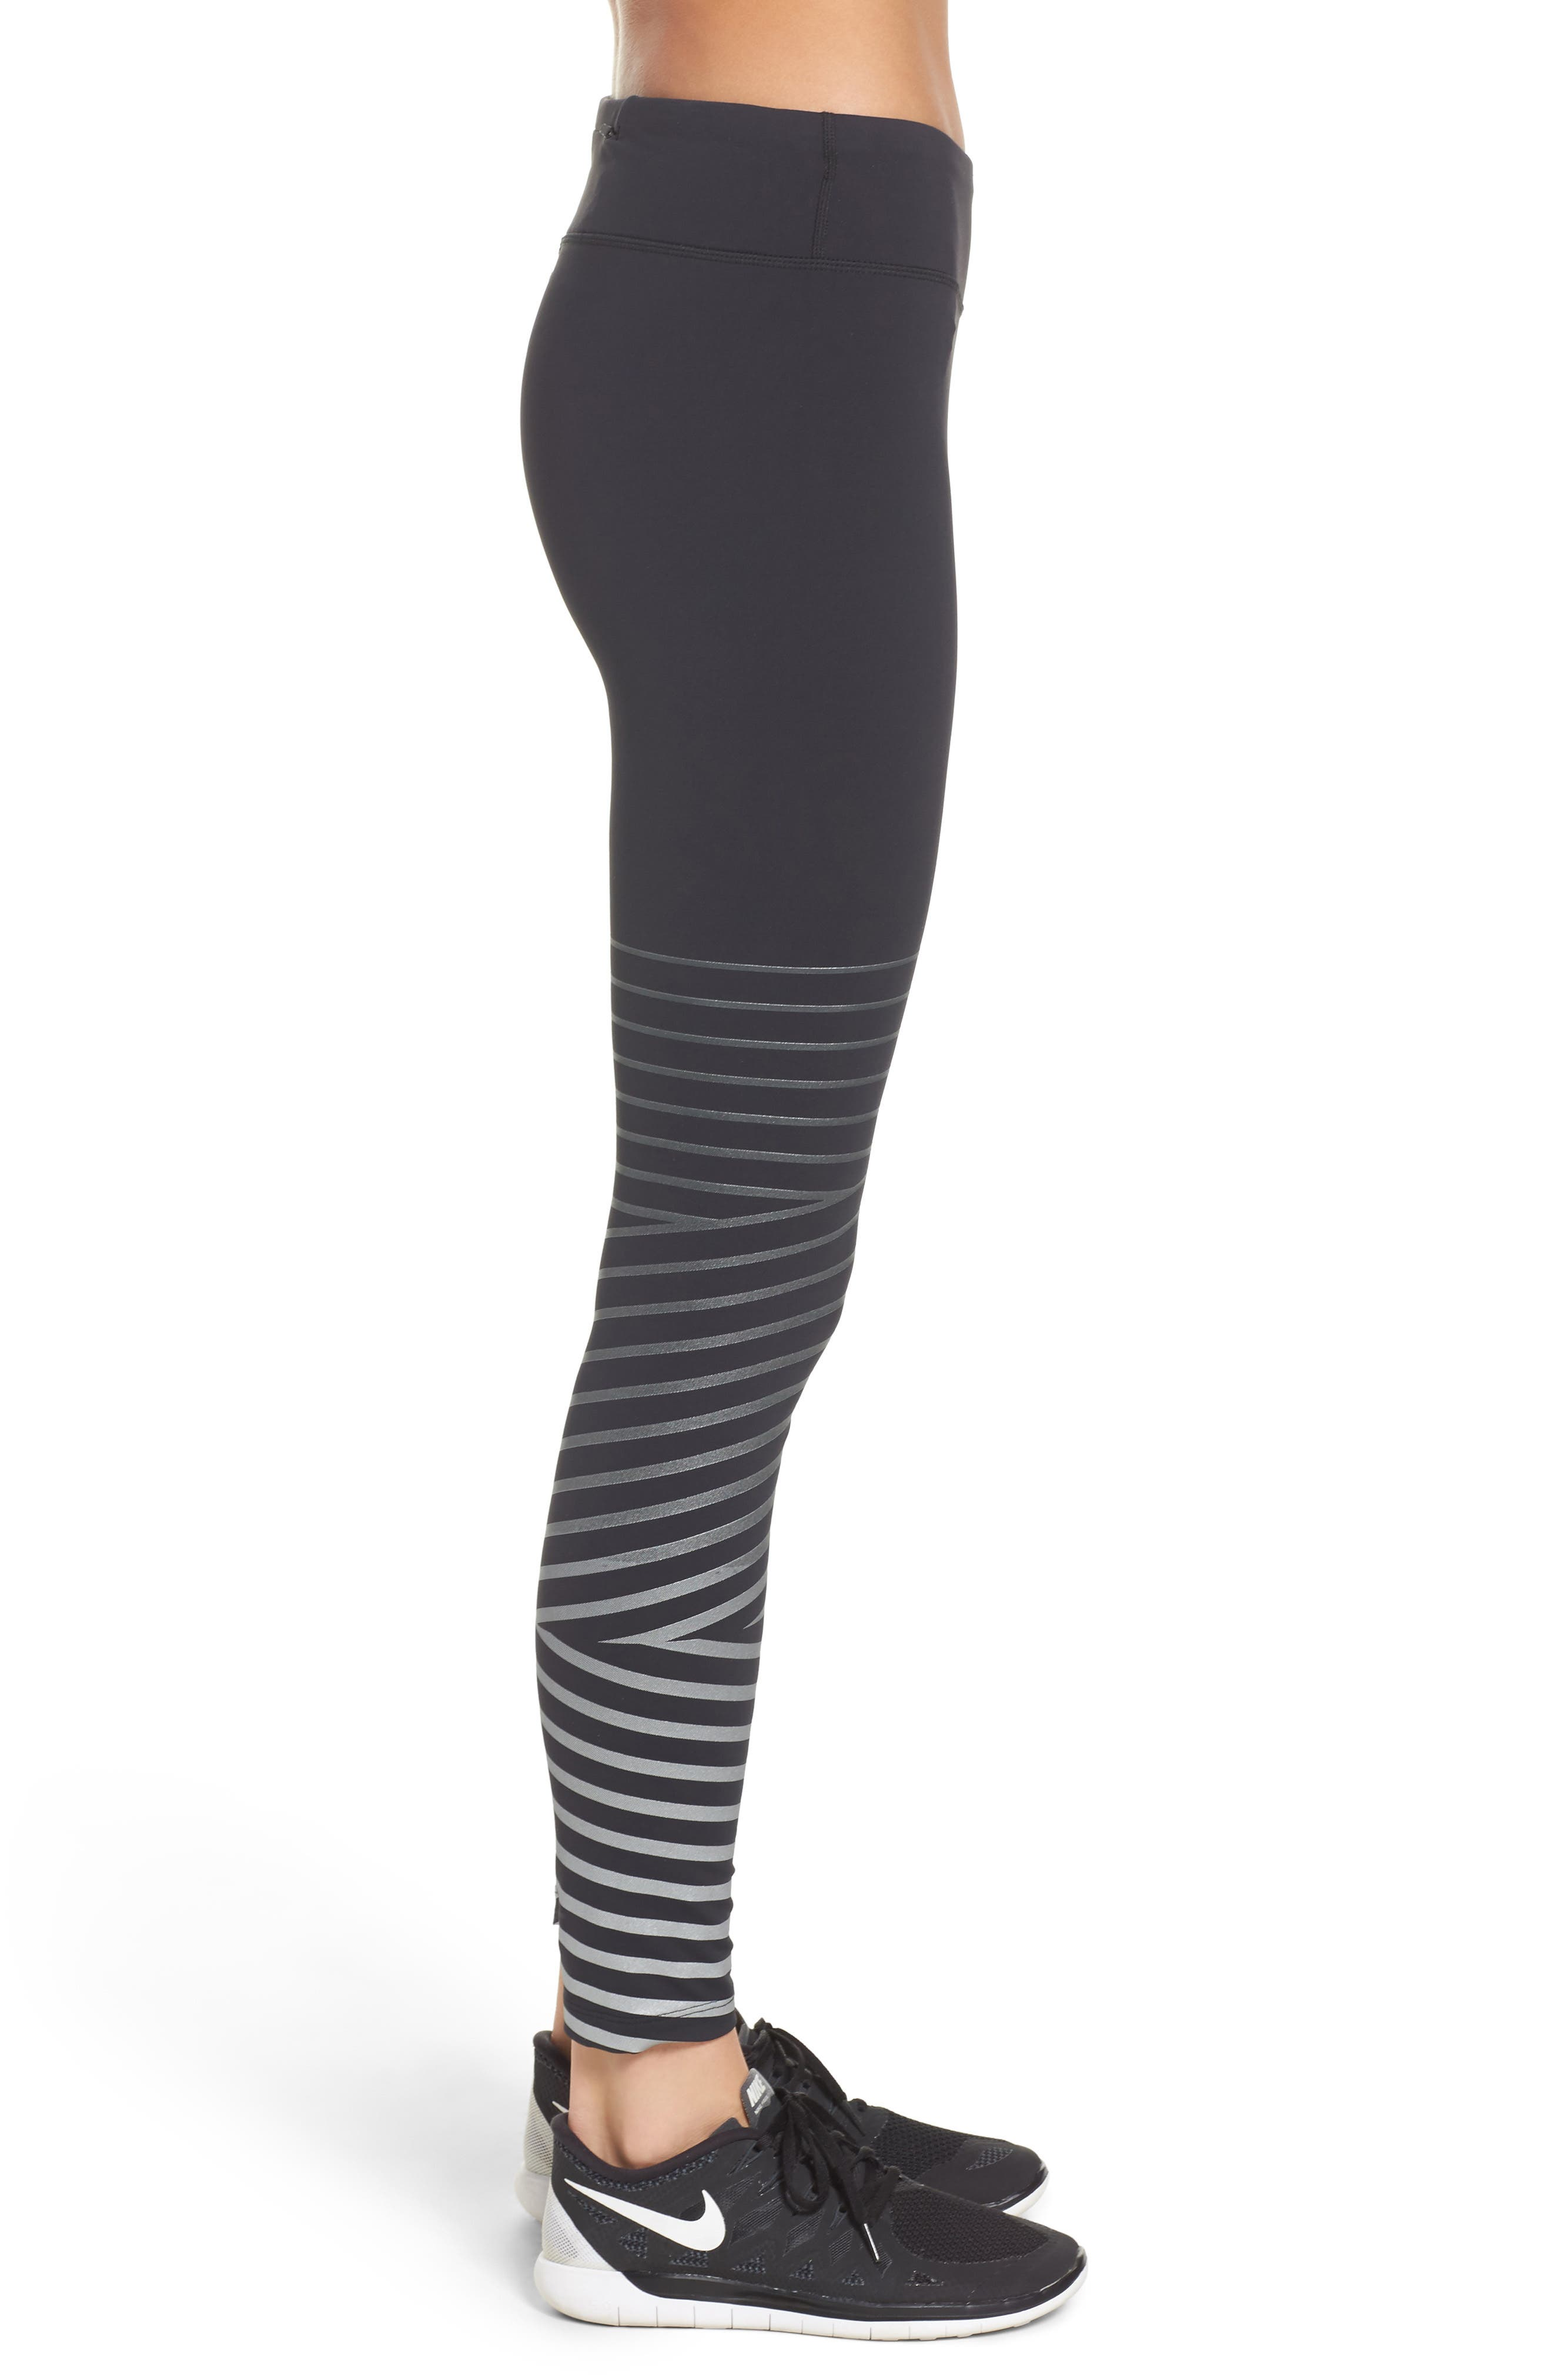 Power Epic Lux Flash Running Tights,                             Alternate thumbnail 3, color,                             Black/ Anthracite